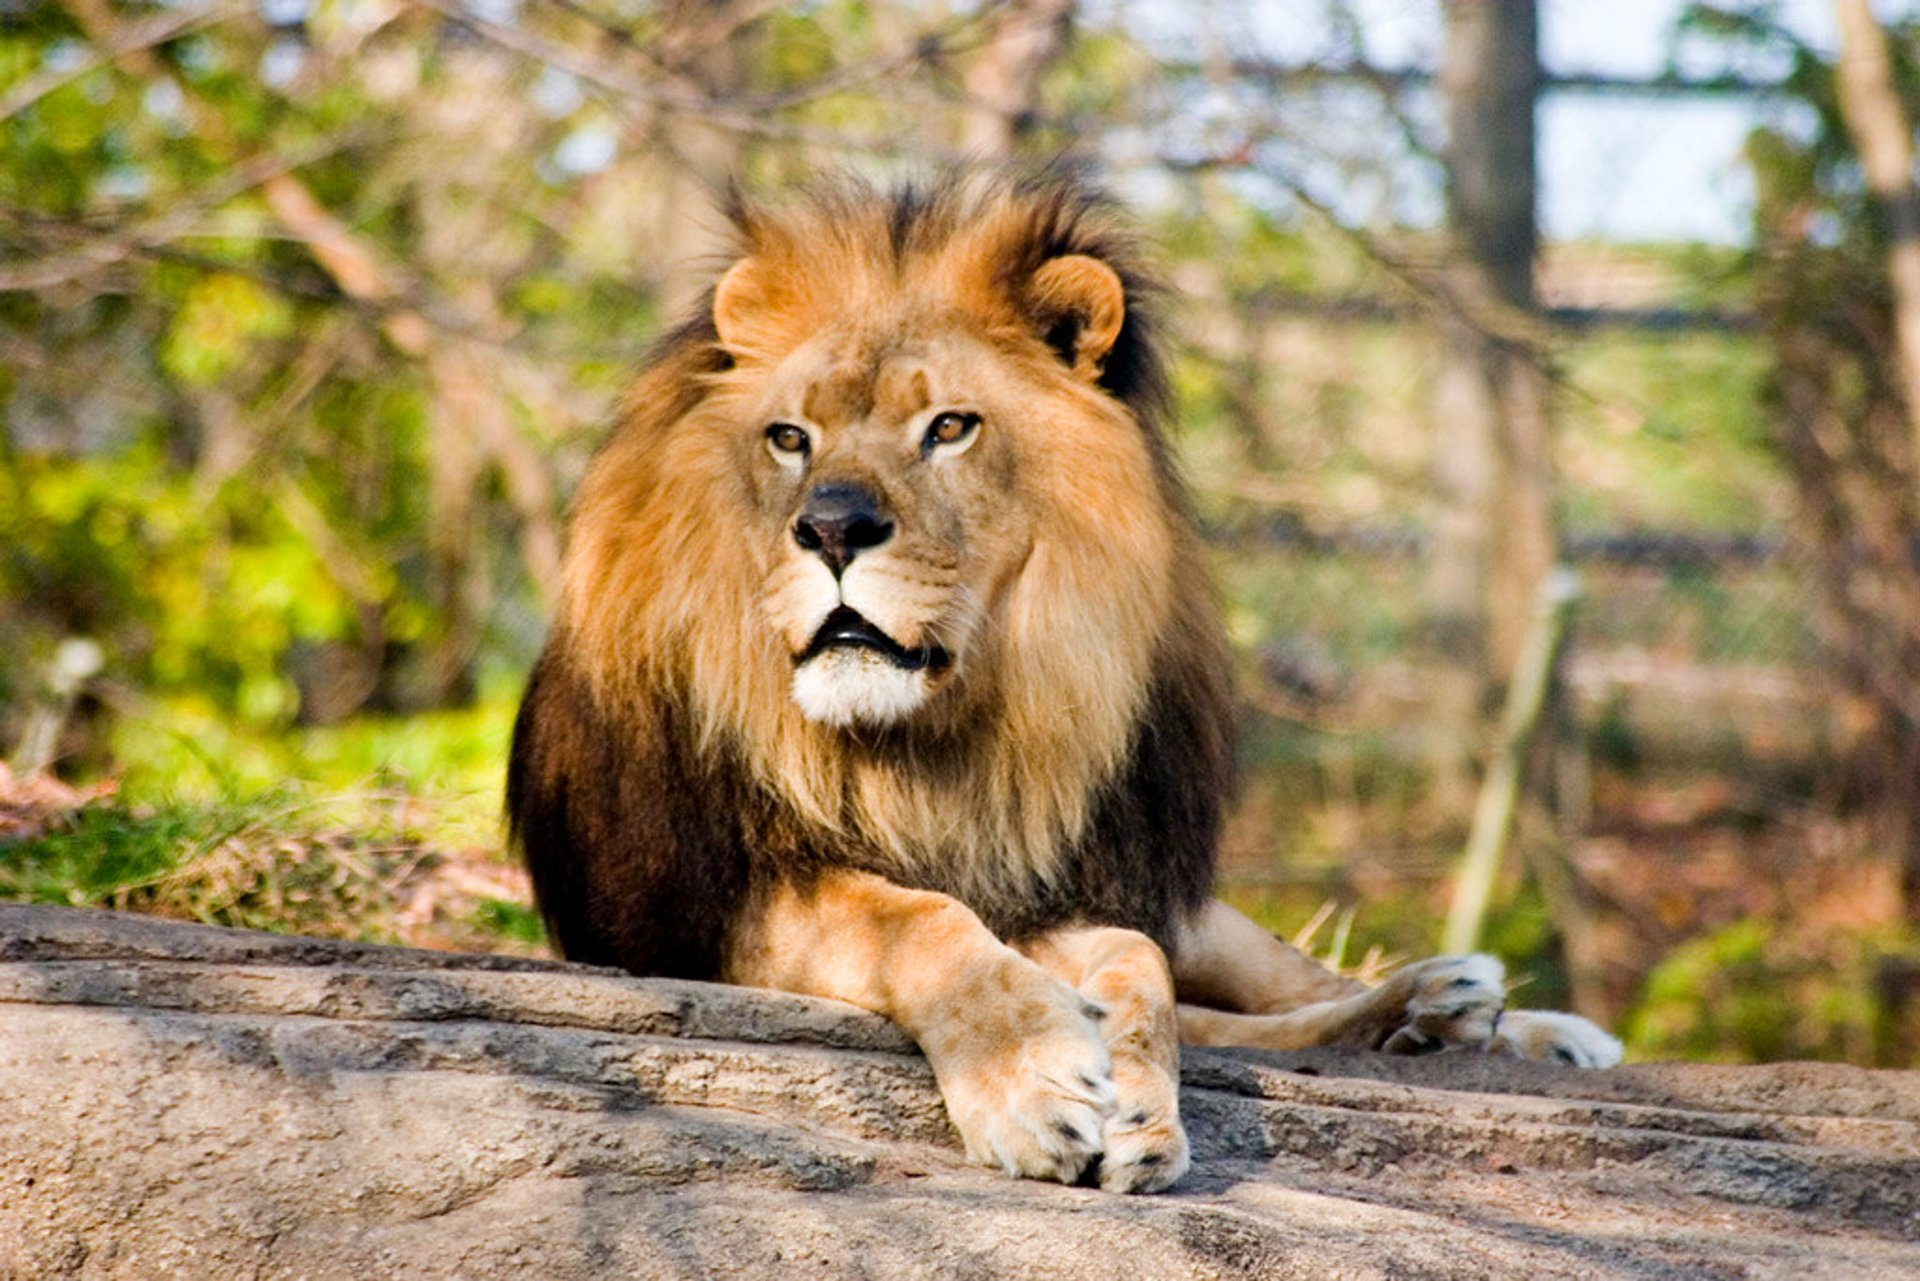 Lion at the Pittsburgh Zoo 2020